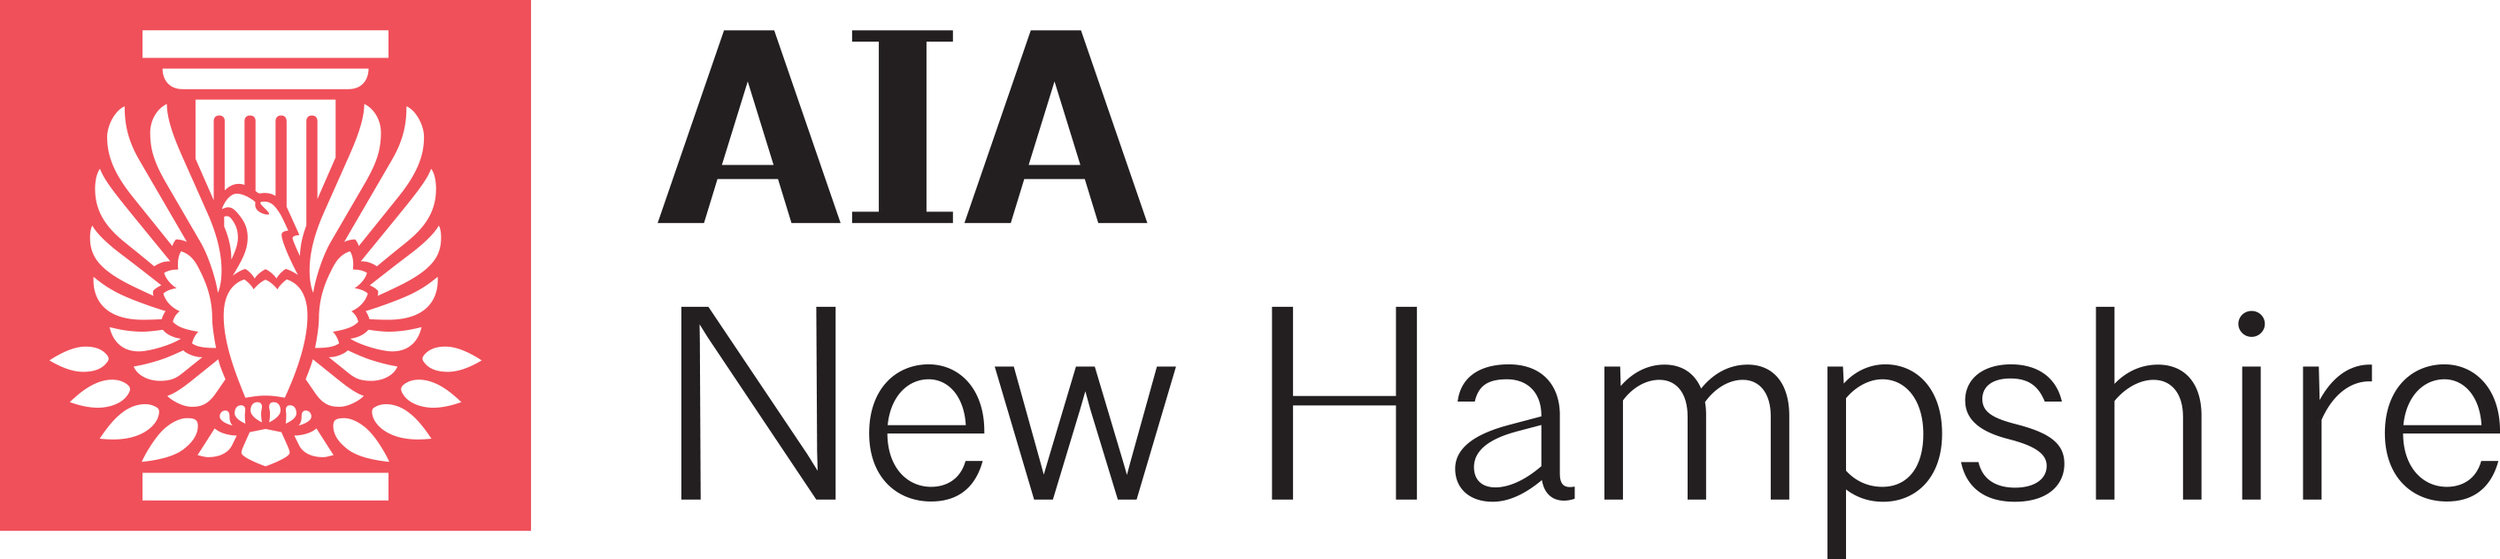 AIA_New_Hampshire_logo_CMYK.jpg